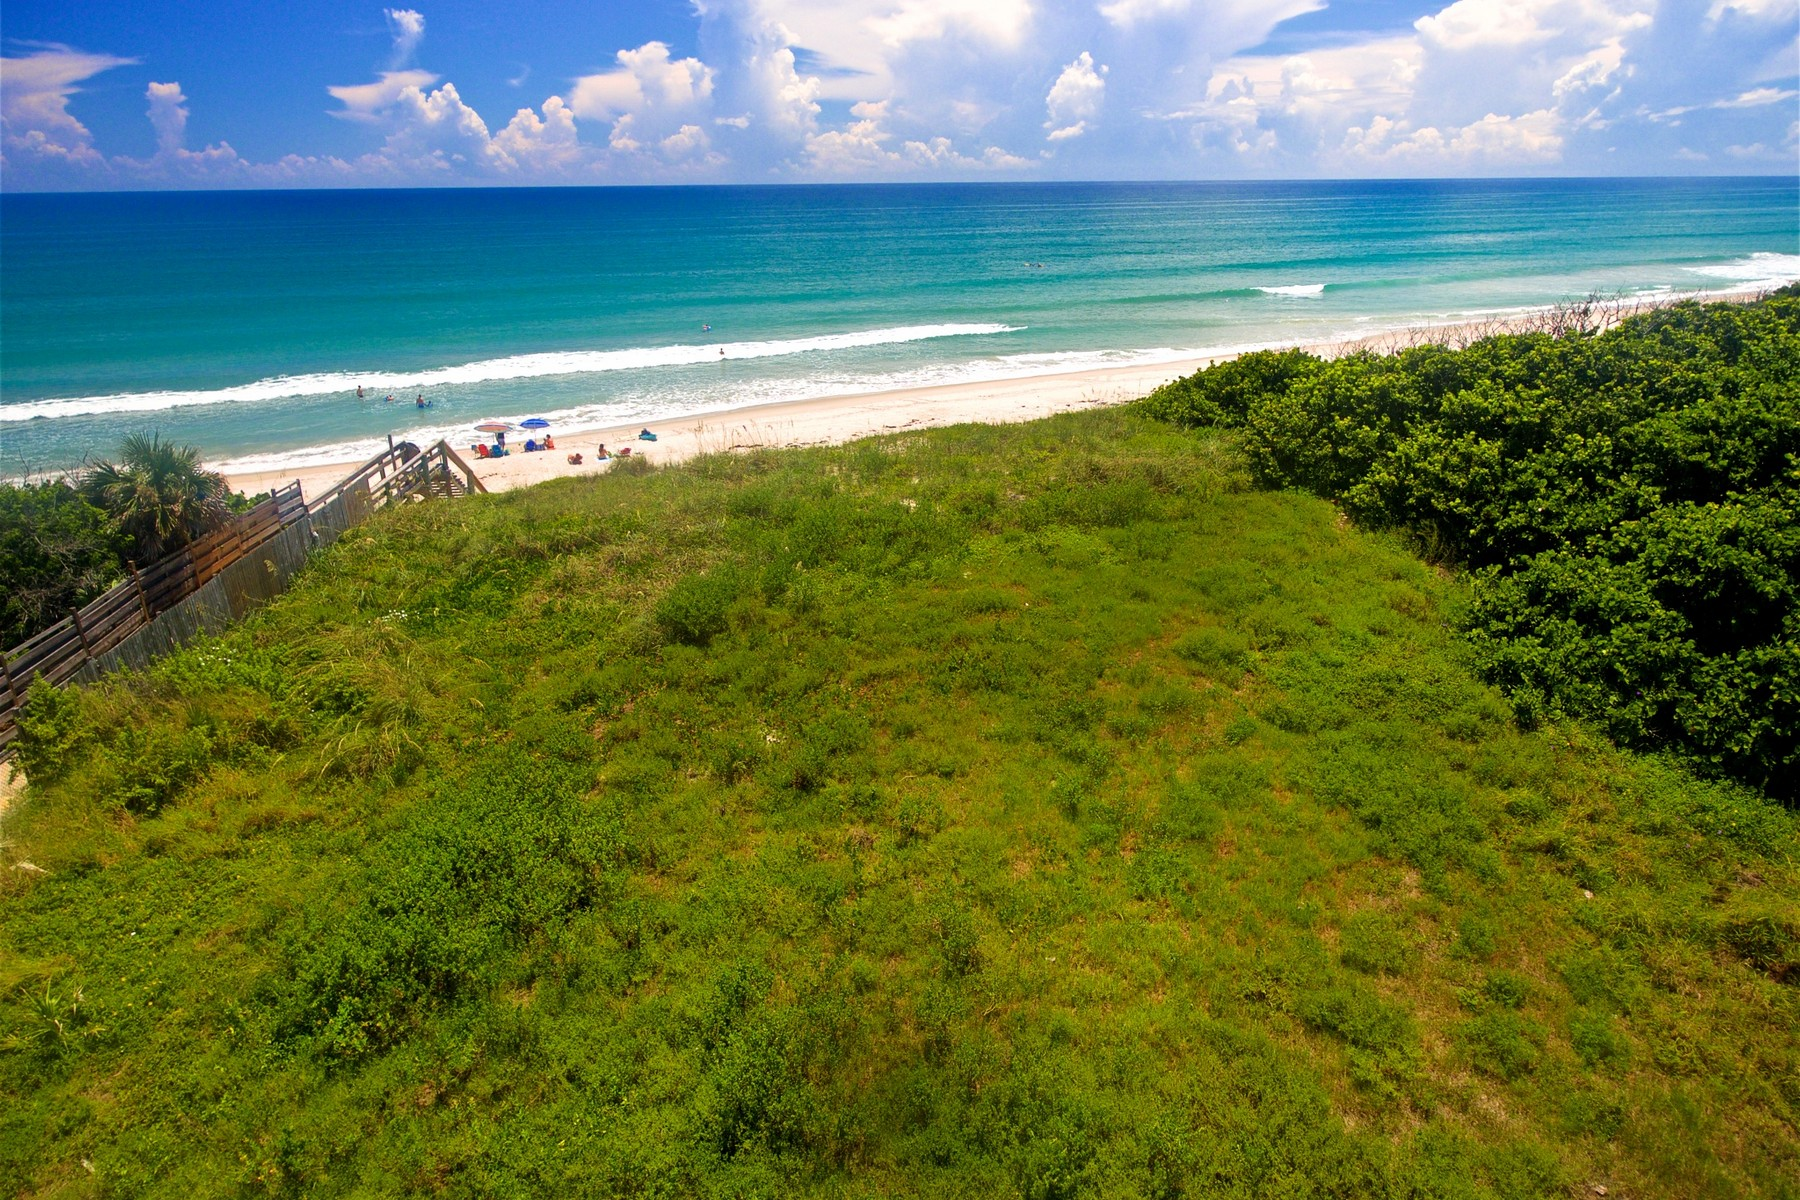 Land for Sale at Great Oceanfront Lot in Premium Location 3315 Highway A1A Melbourne Beach, Florida 32951 United States